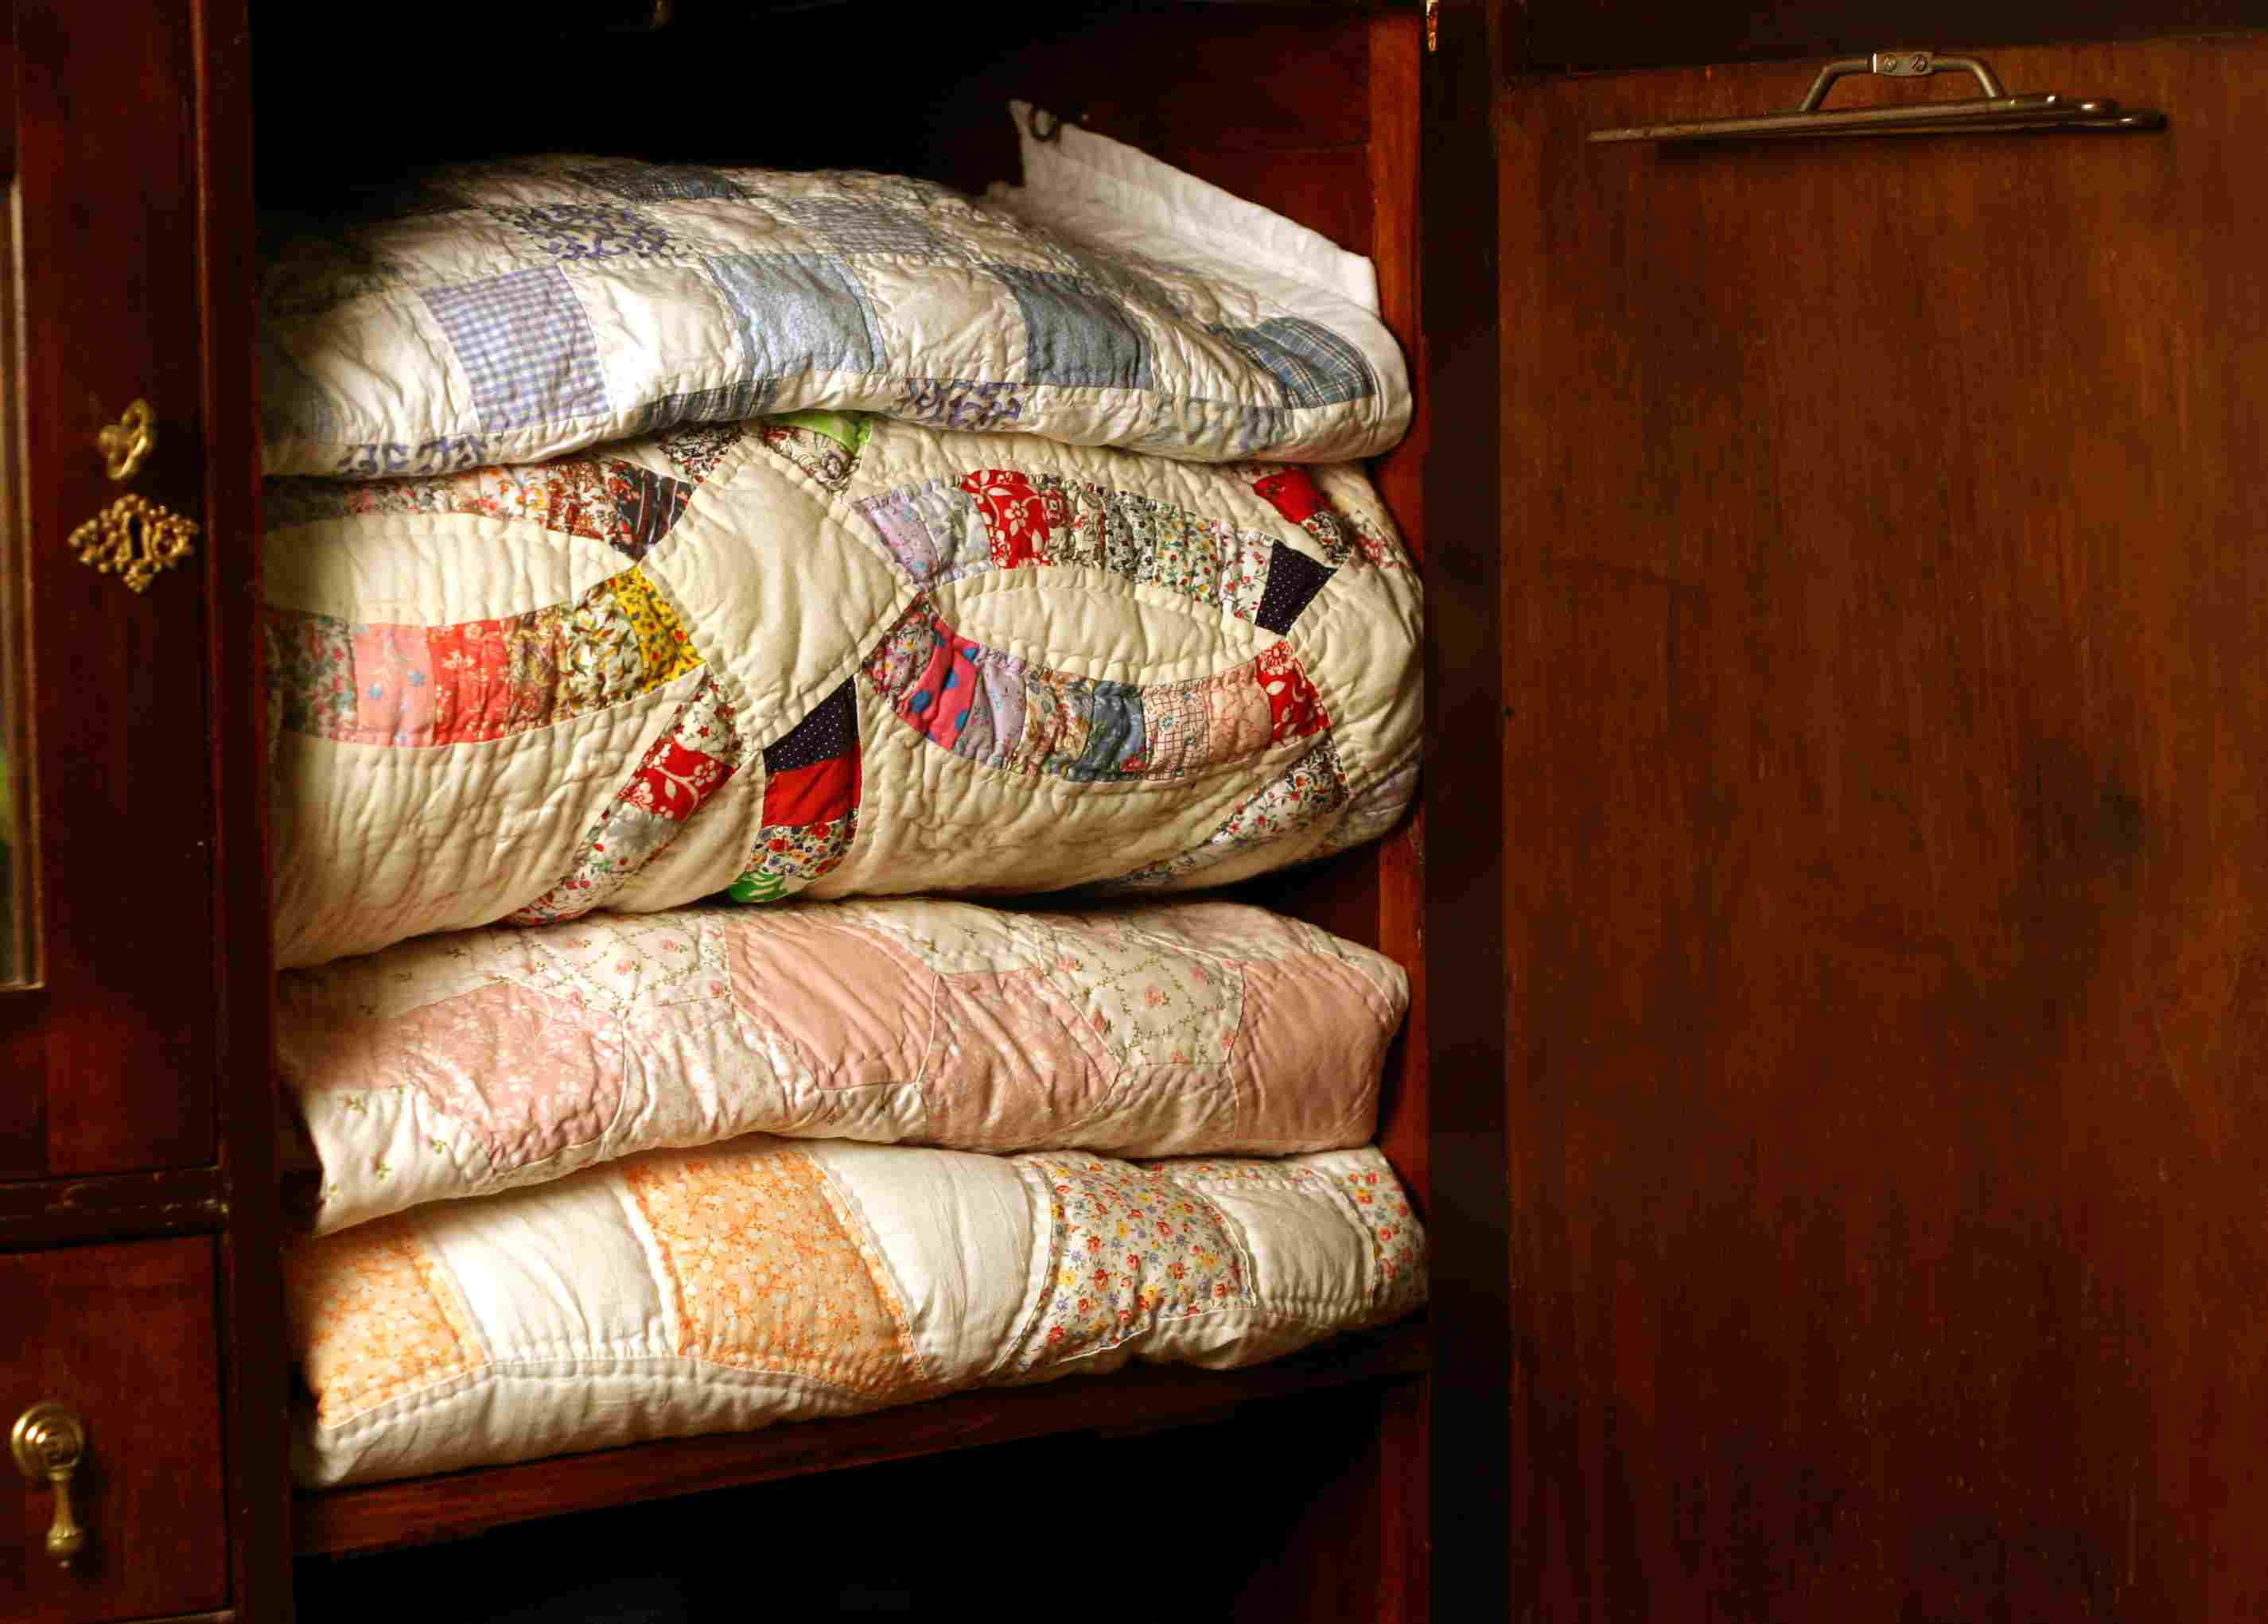 Quilts folded in a closet